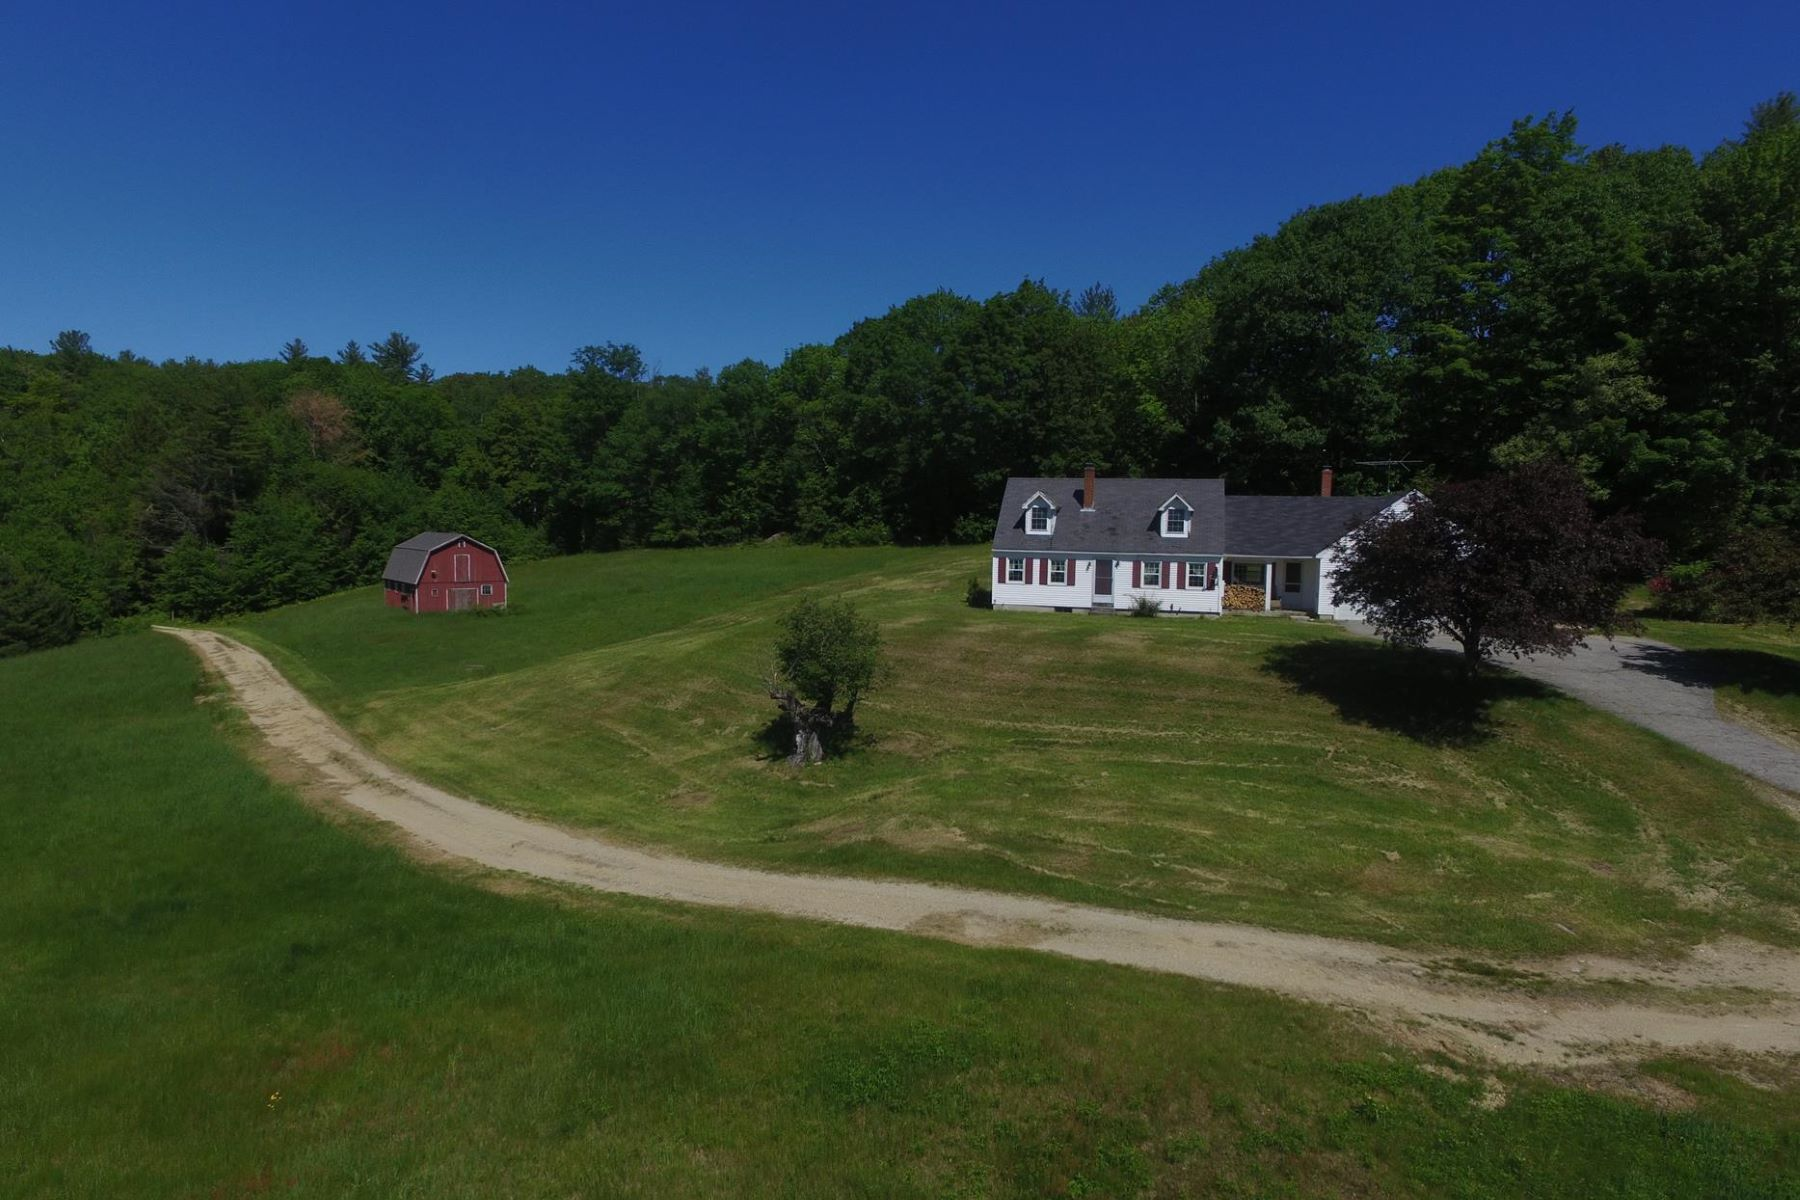 Single Family Homes for Active at 376 Stowe Mountain Road, Hillsborough 376 Stowe Mountain Rd Hillsborough, New Hampshire 03244 United States